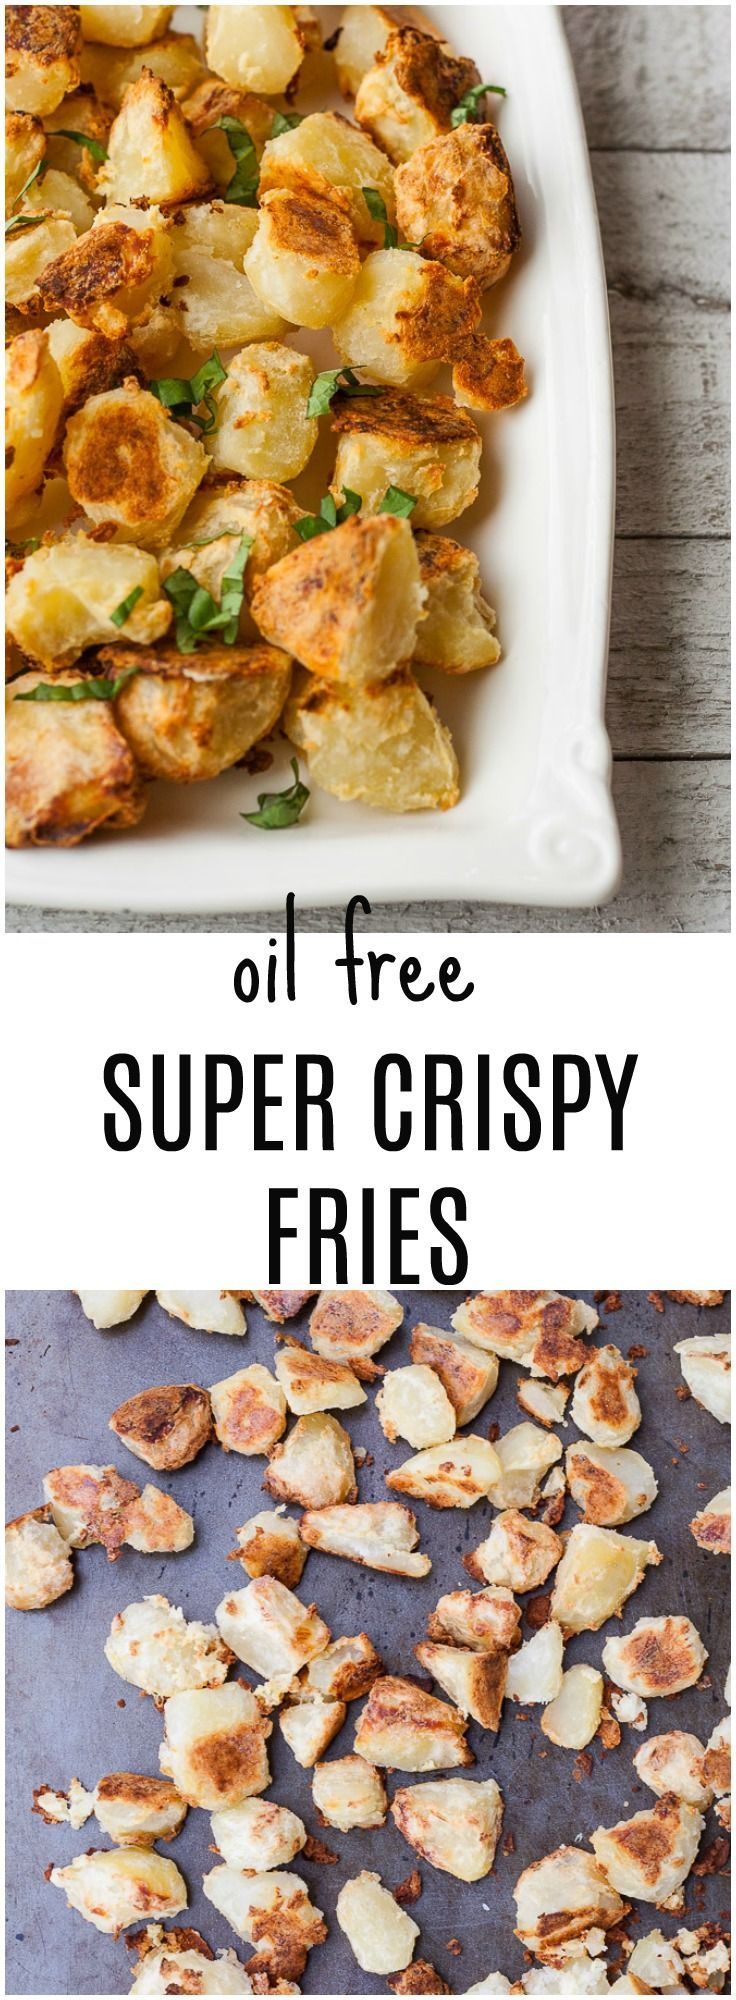 Vegan, oil-free SUPER CRISPY fries, baked in the oven with just a few ingredients.